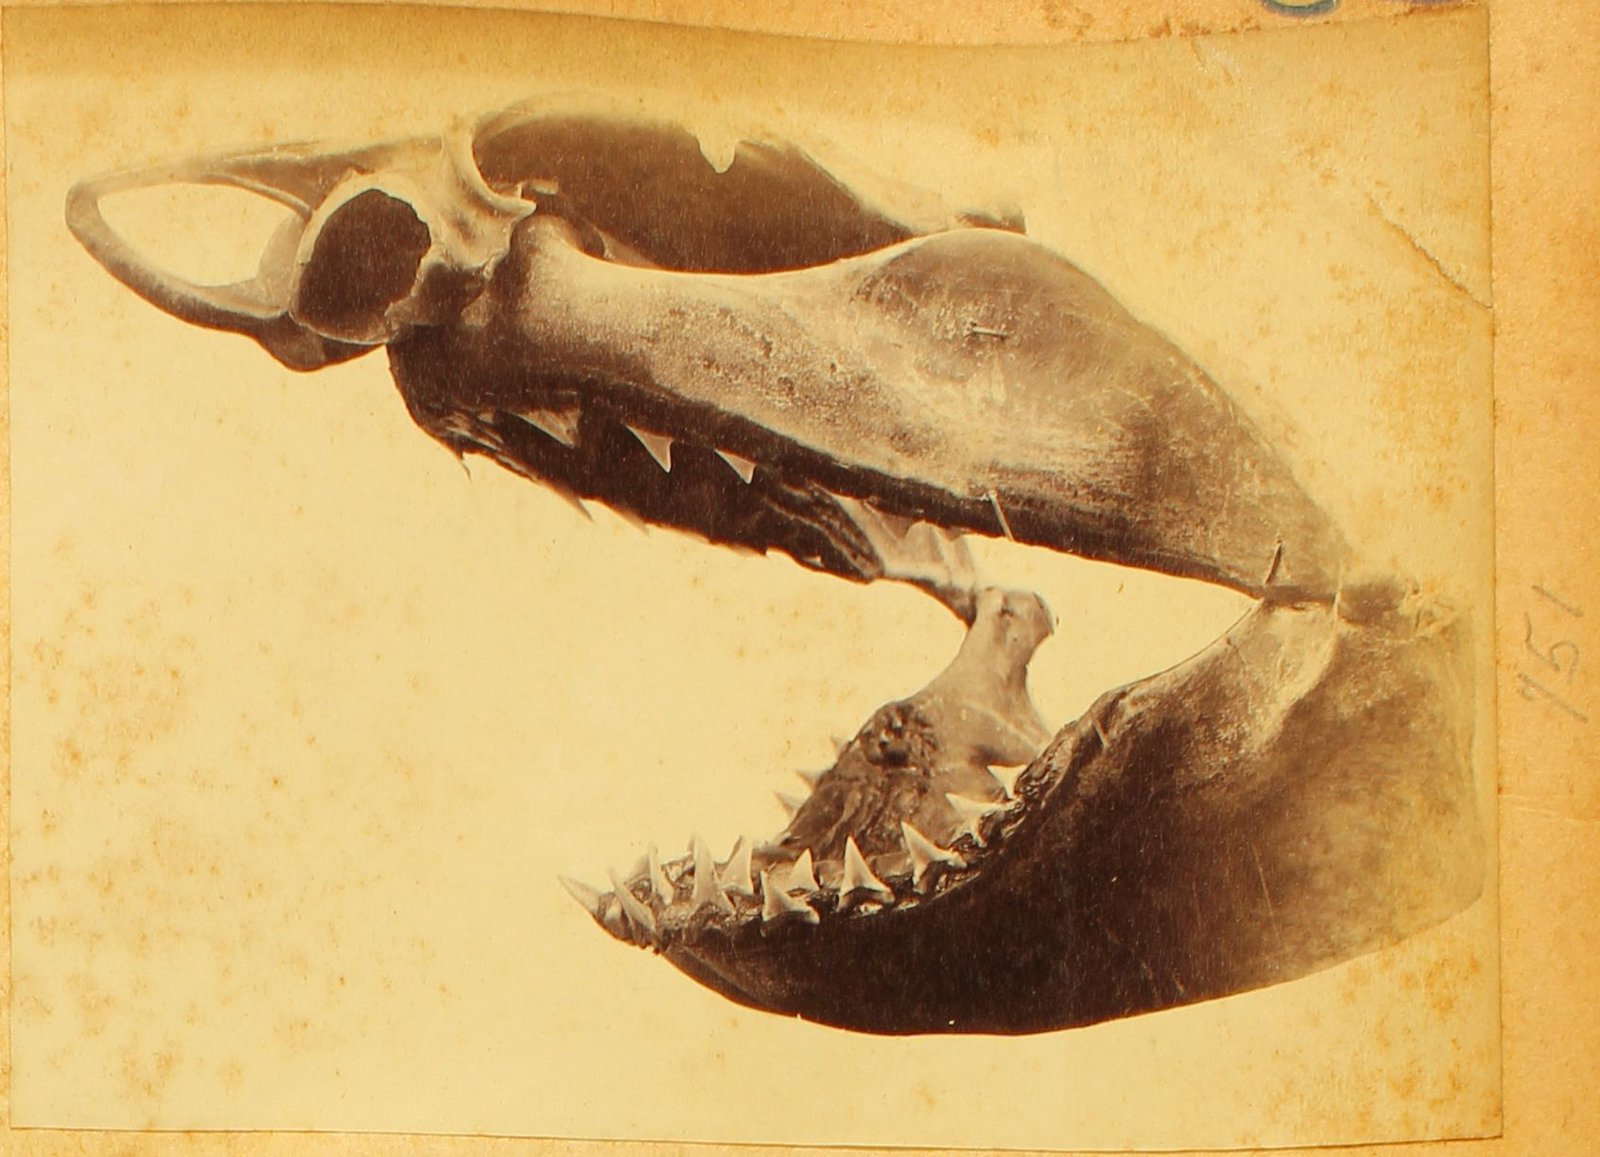 Broadnose shark skull photograph c1880s